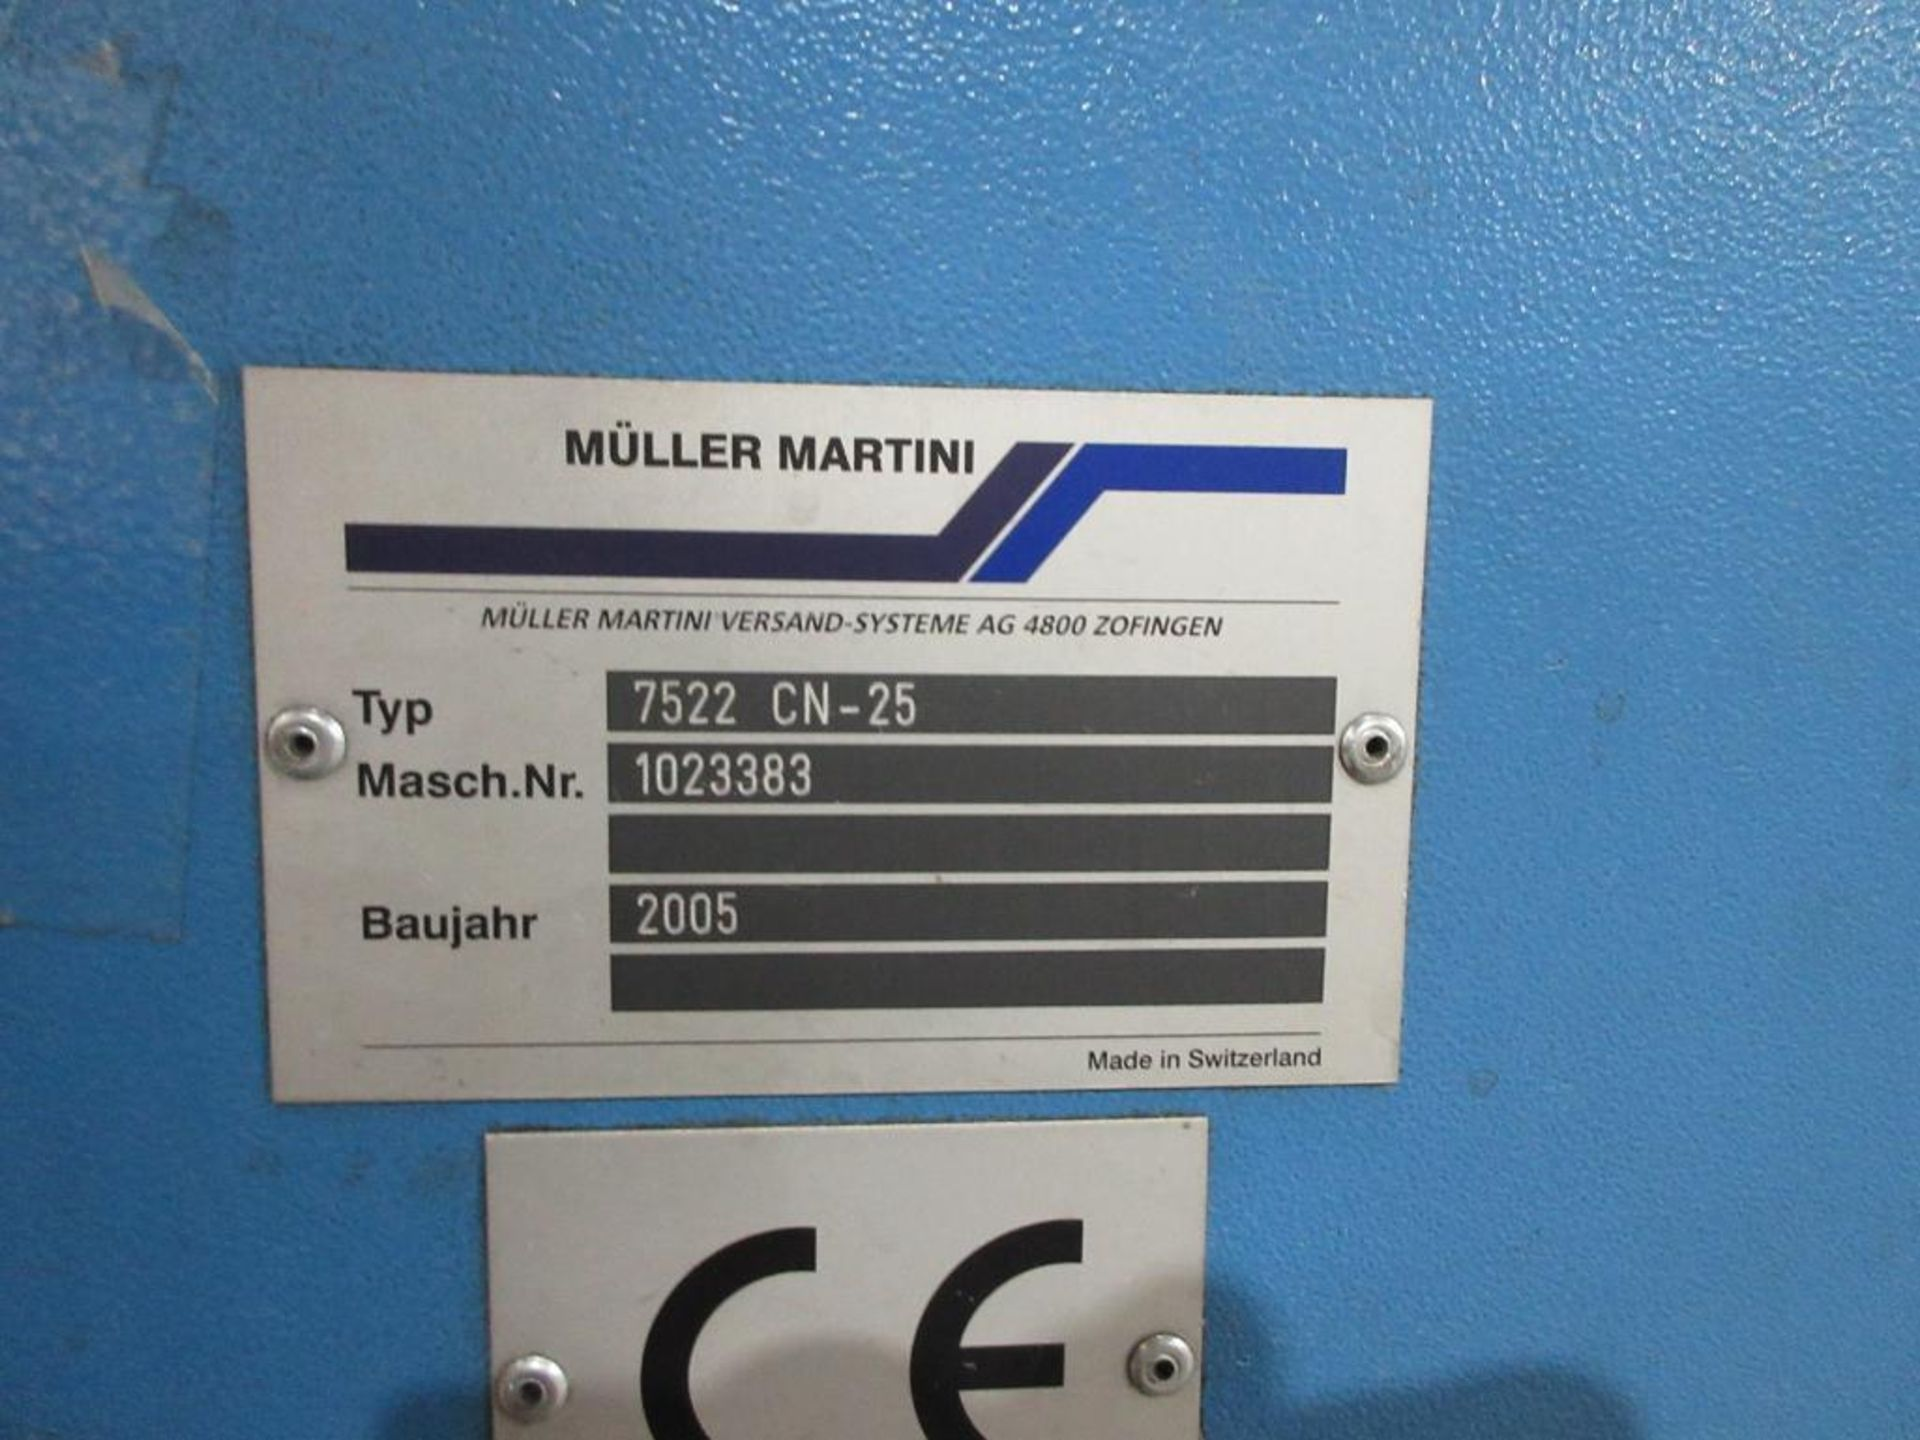 2005 Muller Martini Alphaliner inserter model 7500.0403, minimum pages 4 (tabloid, broadsheet, magaz - Image 12 of 15